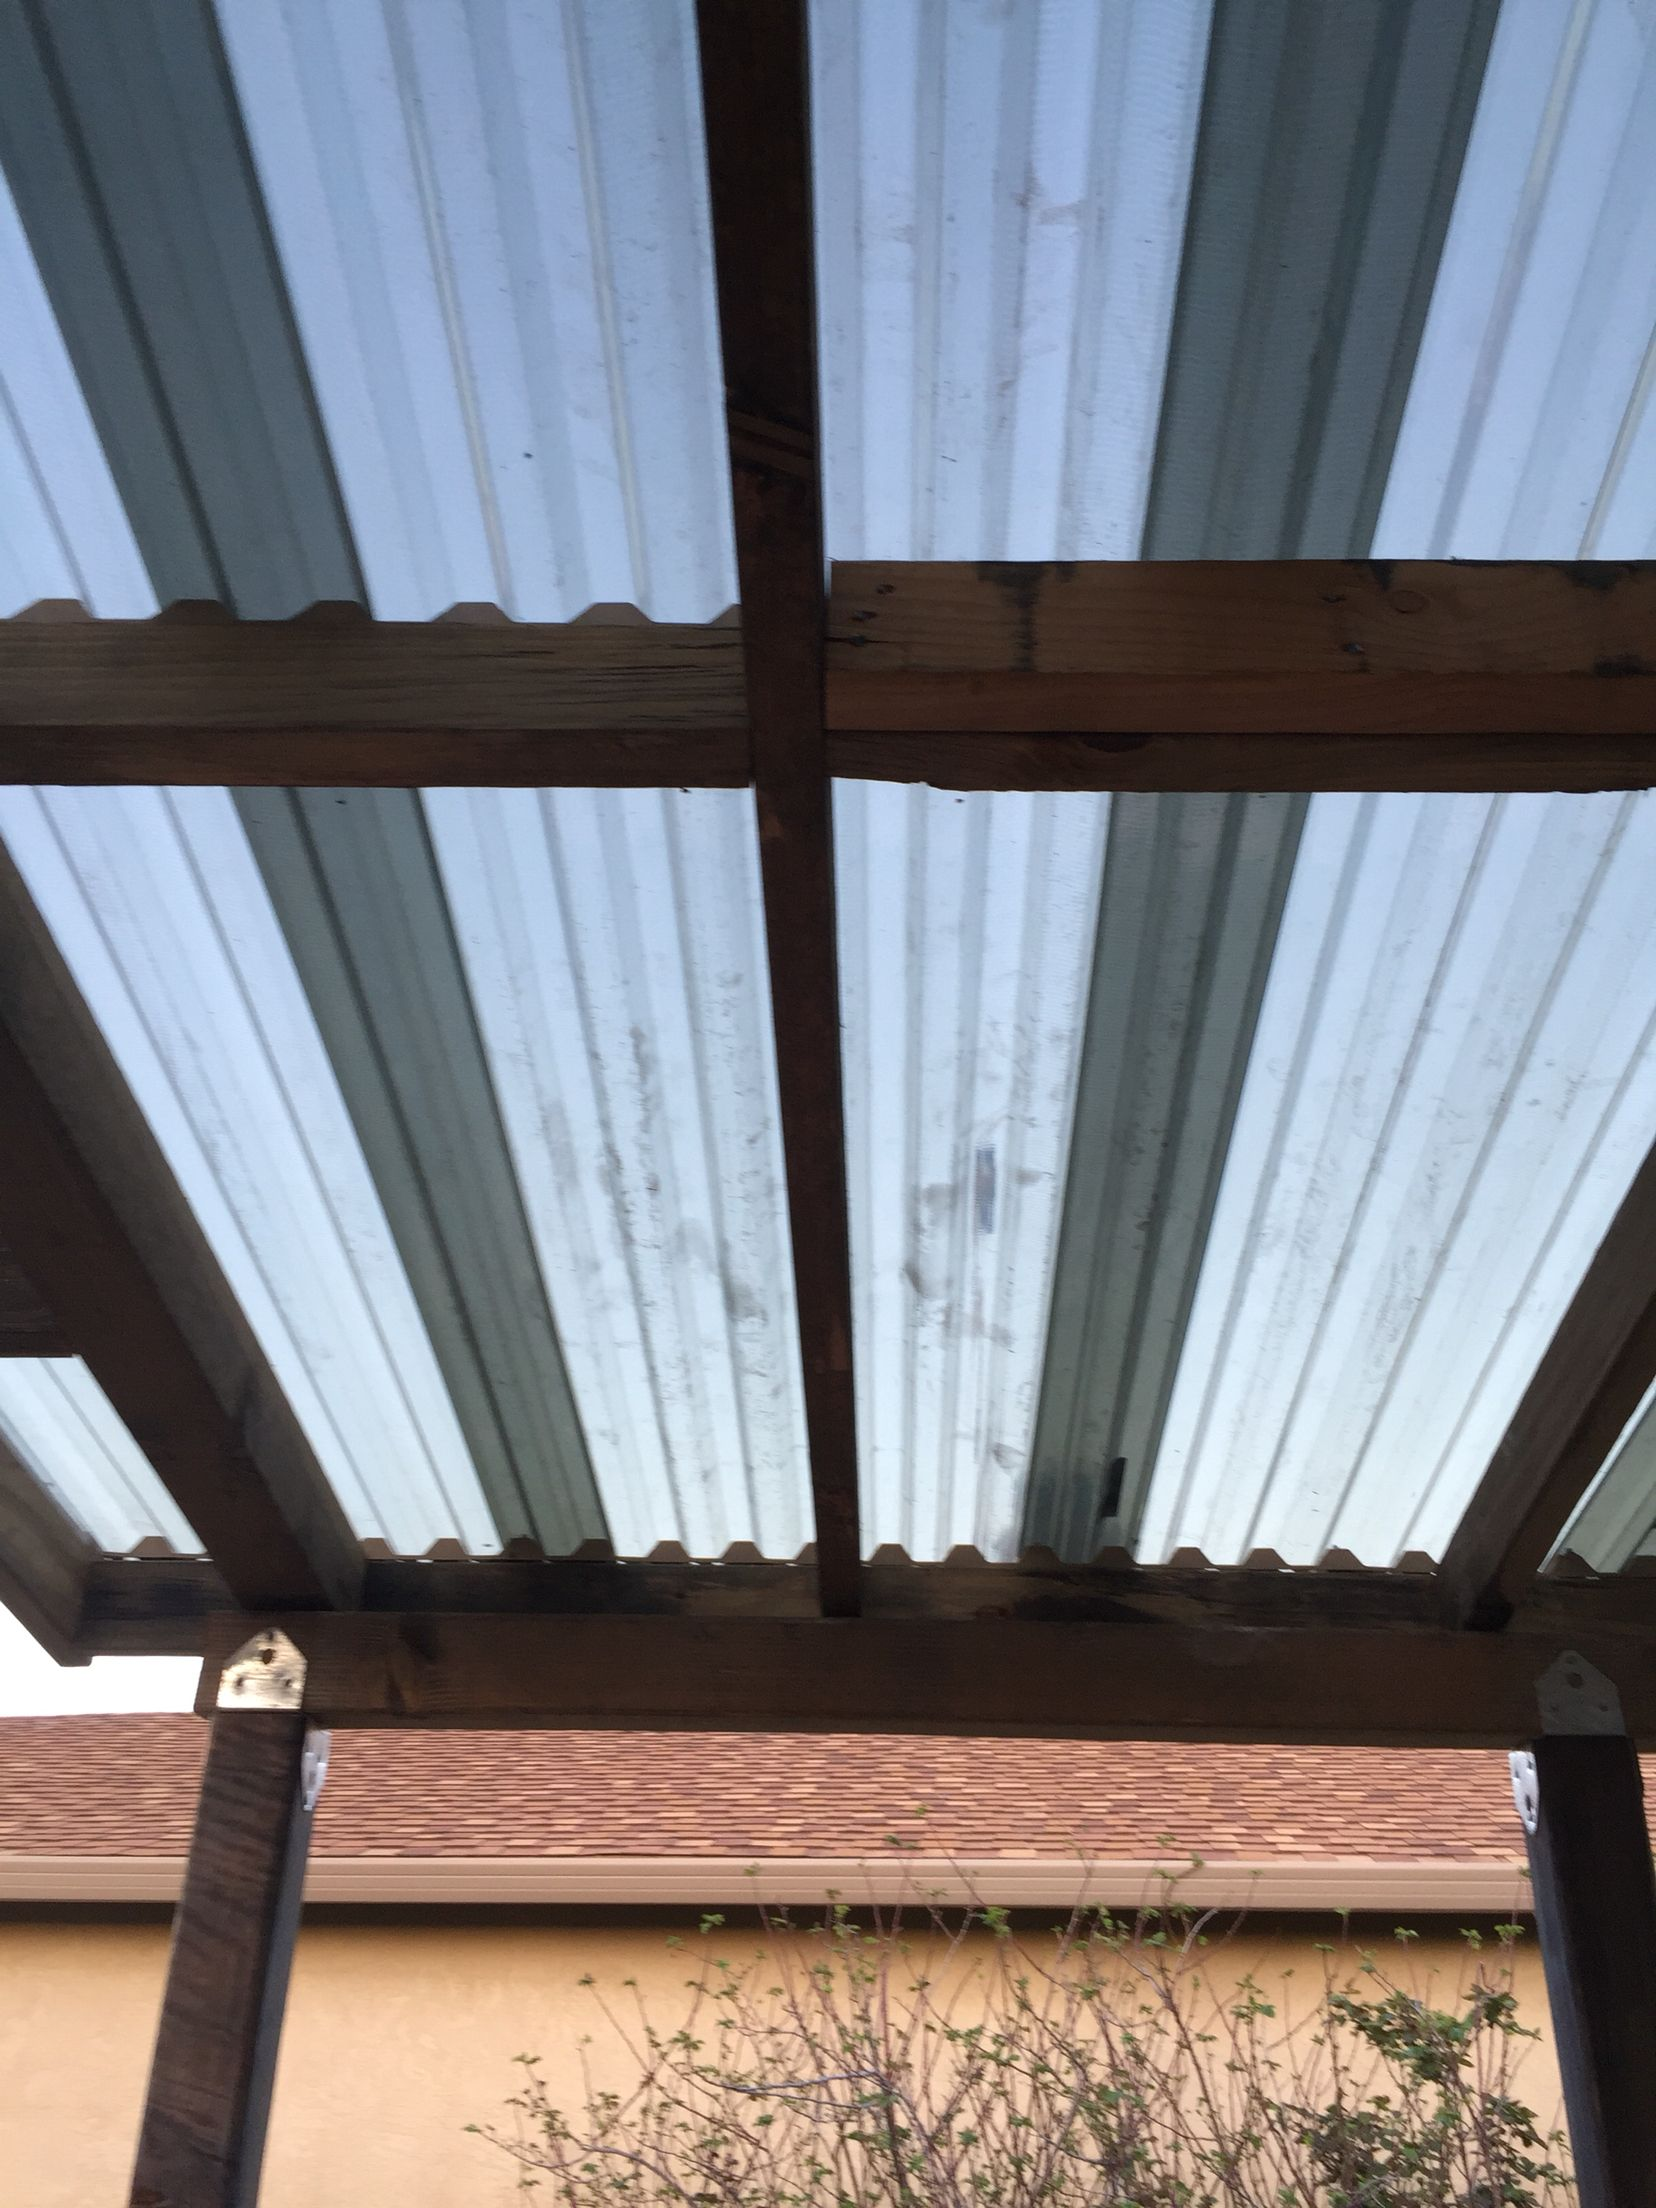 Roof is great. I used SunTuf solar grey color which allows